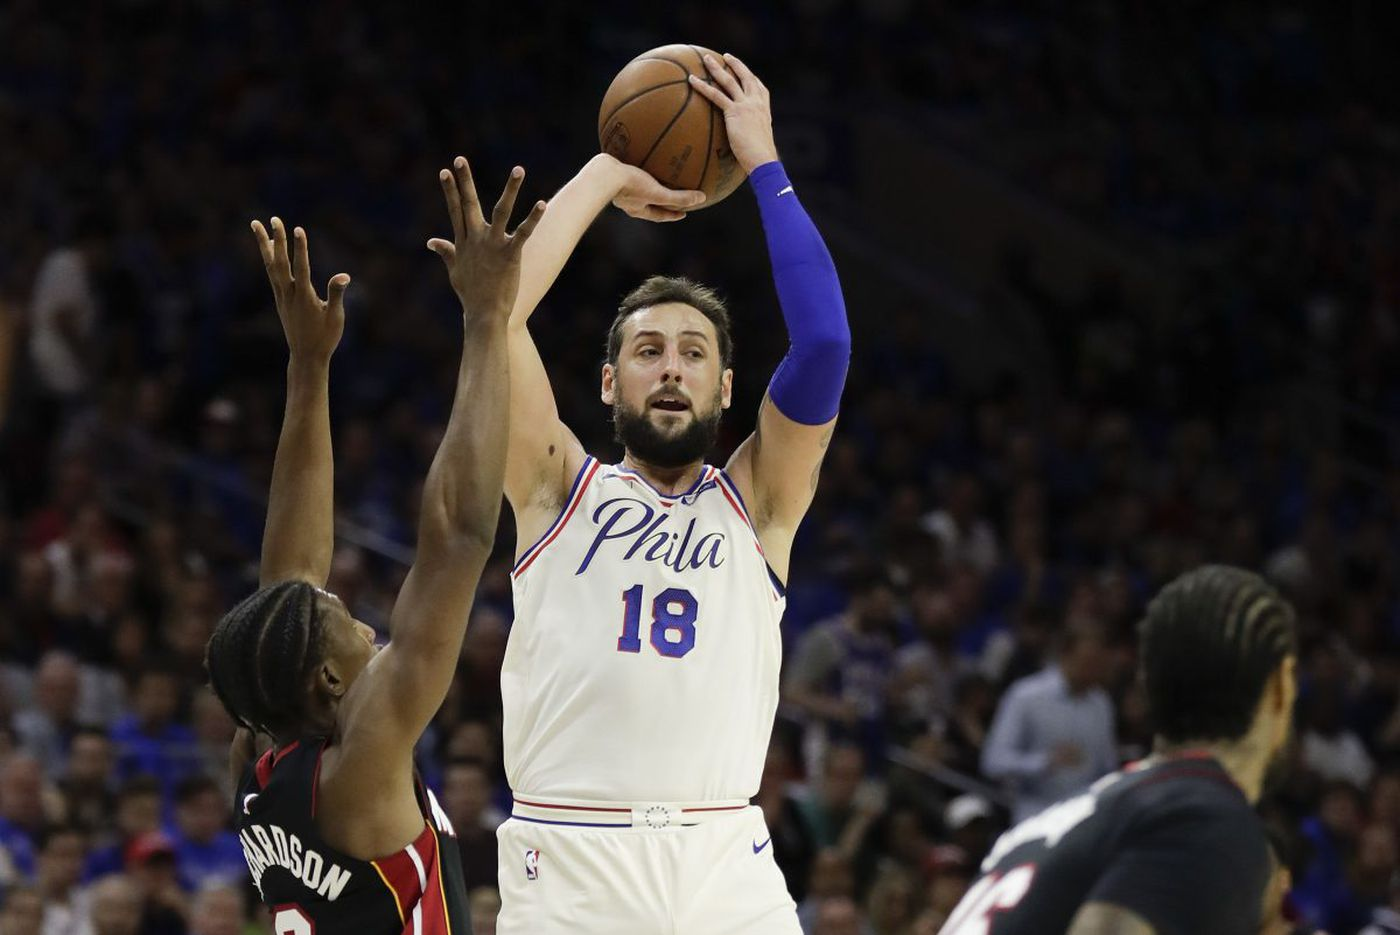 Sixers-Heat Game 2 preview: Philly looks to go up 2-0